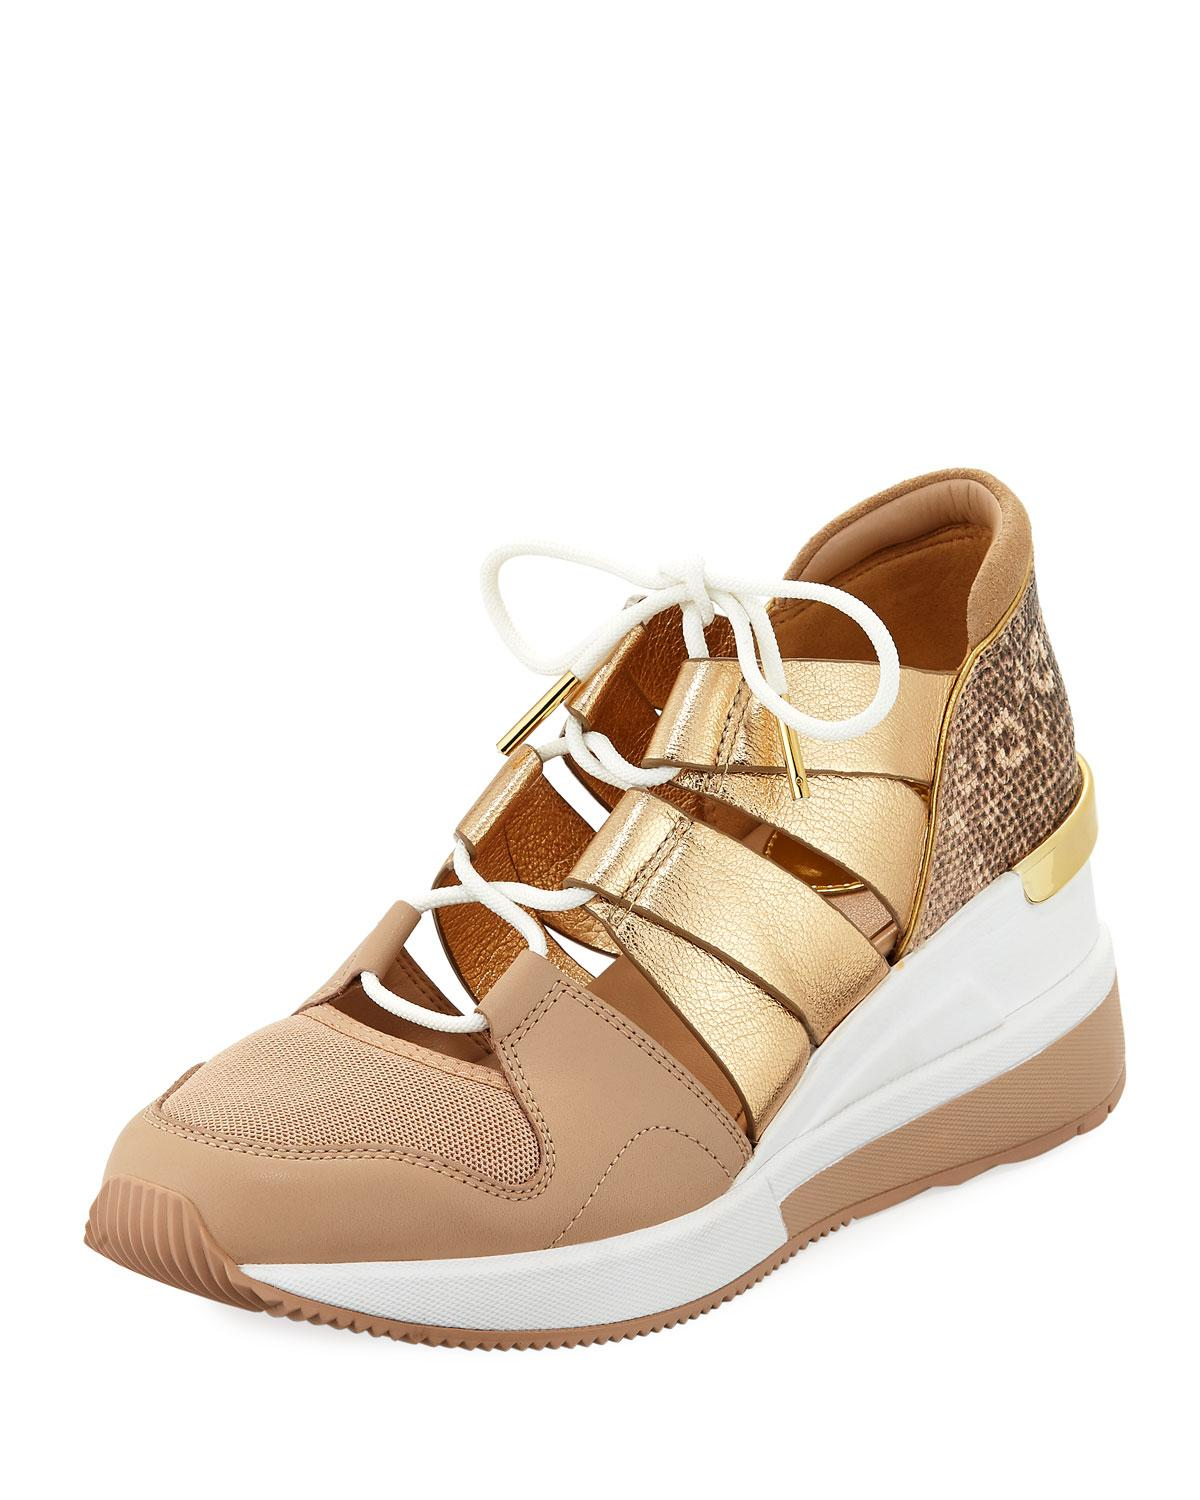 7680ea20389 Michael Michael Kors Beckett Metallic Trainer Sneakers In Oyster Gold